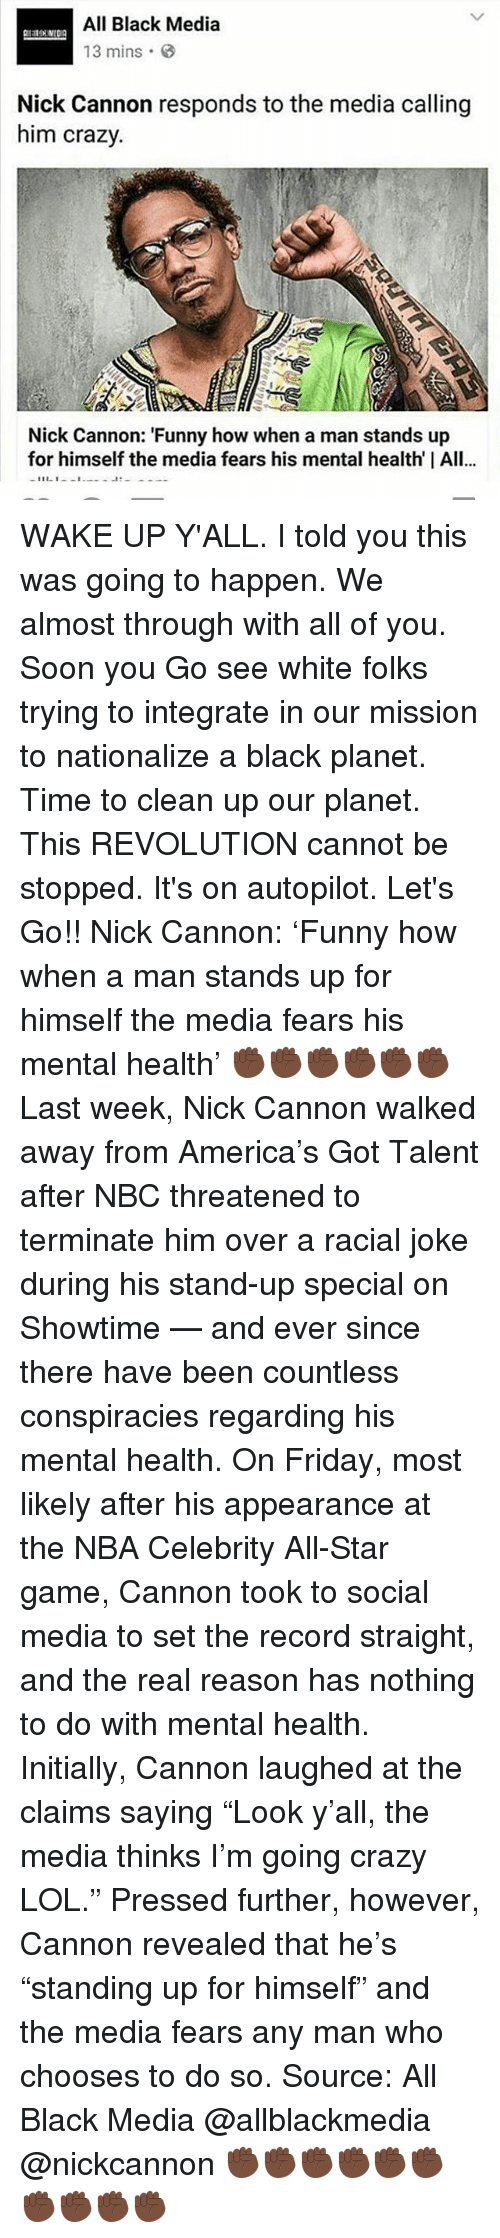 """nick cannon: All Black Media  13 mins  Nick Cannon responds to the media calling  him crazy.  Nick Cannon: """"Funny how when a man stands up  for himself the media fears his mental health I All...  11 1 WAKE UP Y'ALL. I told you this was going to happen. We almost through with all of you. Soon you Go see white folks trying to integrate in our mission to nationalize a black planet. Time to clean up our planet. This REVOLUTION cannot be stopped. It's on autopilot. Let's Go!! Nick Cannon: 'Funny how when a man stands up for himself the media fears his mental health' ✊🏿✊🏿✊🏿✊🏿✊🏿✊🏿 Last week, Nick Cannon walked away from America's Got Talent after NBC threatened to terminate him over a racial joke during his stand-up special on Showtime — and ever since there have been countless conspiracies regarding his mental health. On Friday, most likely after his appearance at the NBA Celebrity All-Star game, Cannon took to social media to set the record straight, and the real reason has nothing to do with mental health. Initially, Cannon laughed at the claims saying """"Look y'all, the media thinks I'm going crazy LOL."""" Pressed further, however, Cannon revealed that he's """"standing up for himself"""" and the media fears any man who chooses to do so. Source: All Black Media @allblackmedia @nickcannon ✊🏿✊🏿✊🏿✊🏿✊🏿✊🏿✊🏿✊🏿✊🏿✊🏿"""